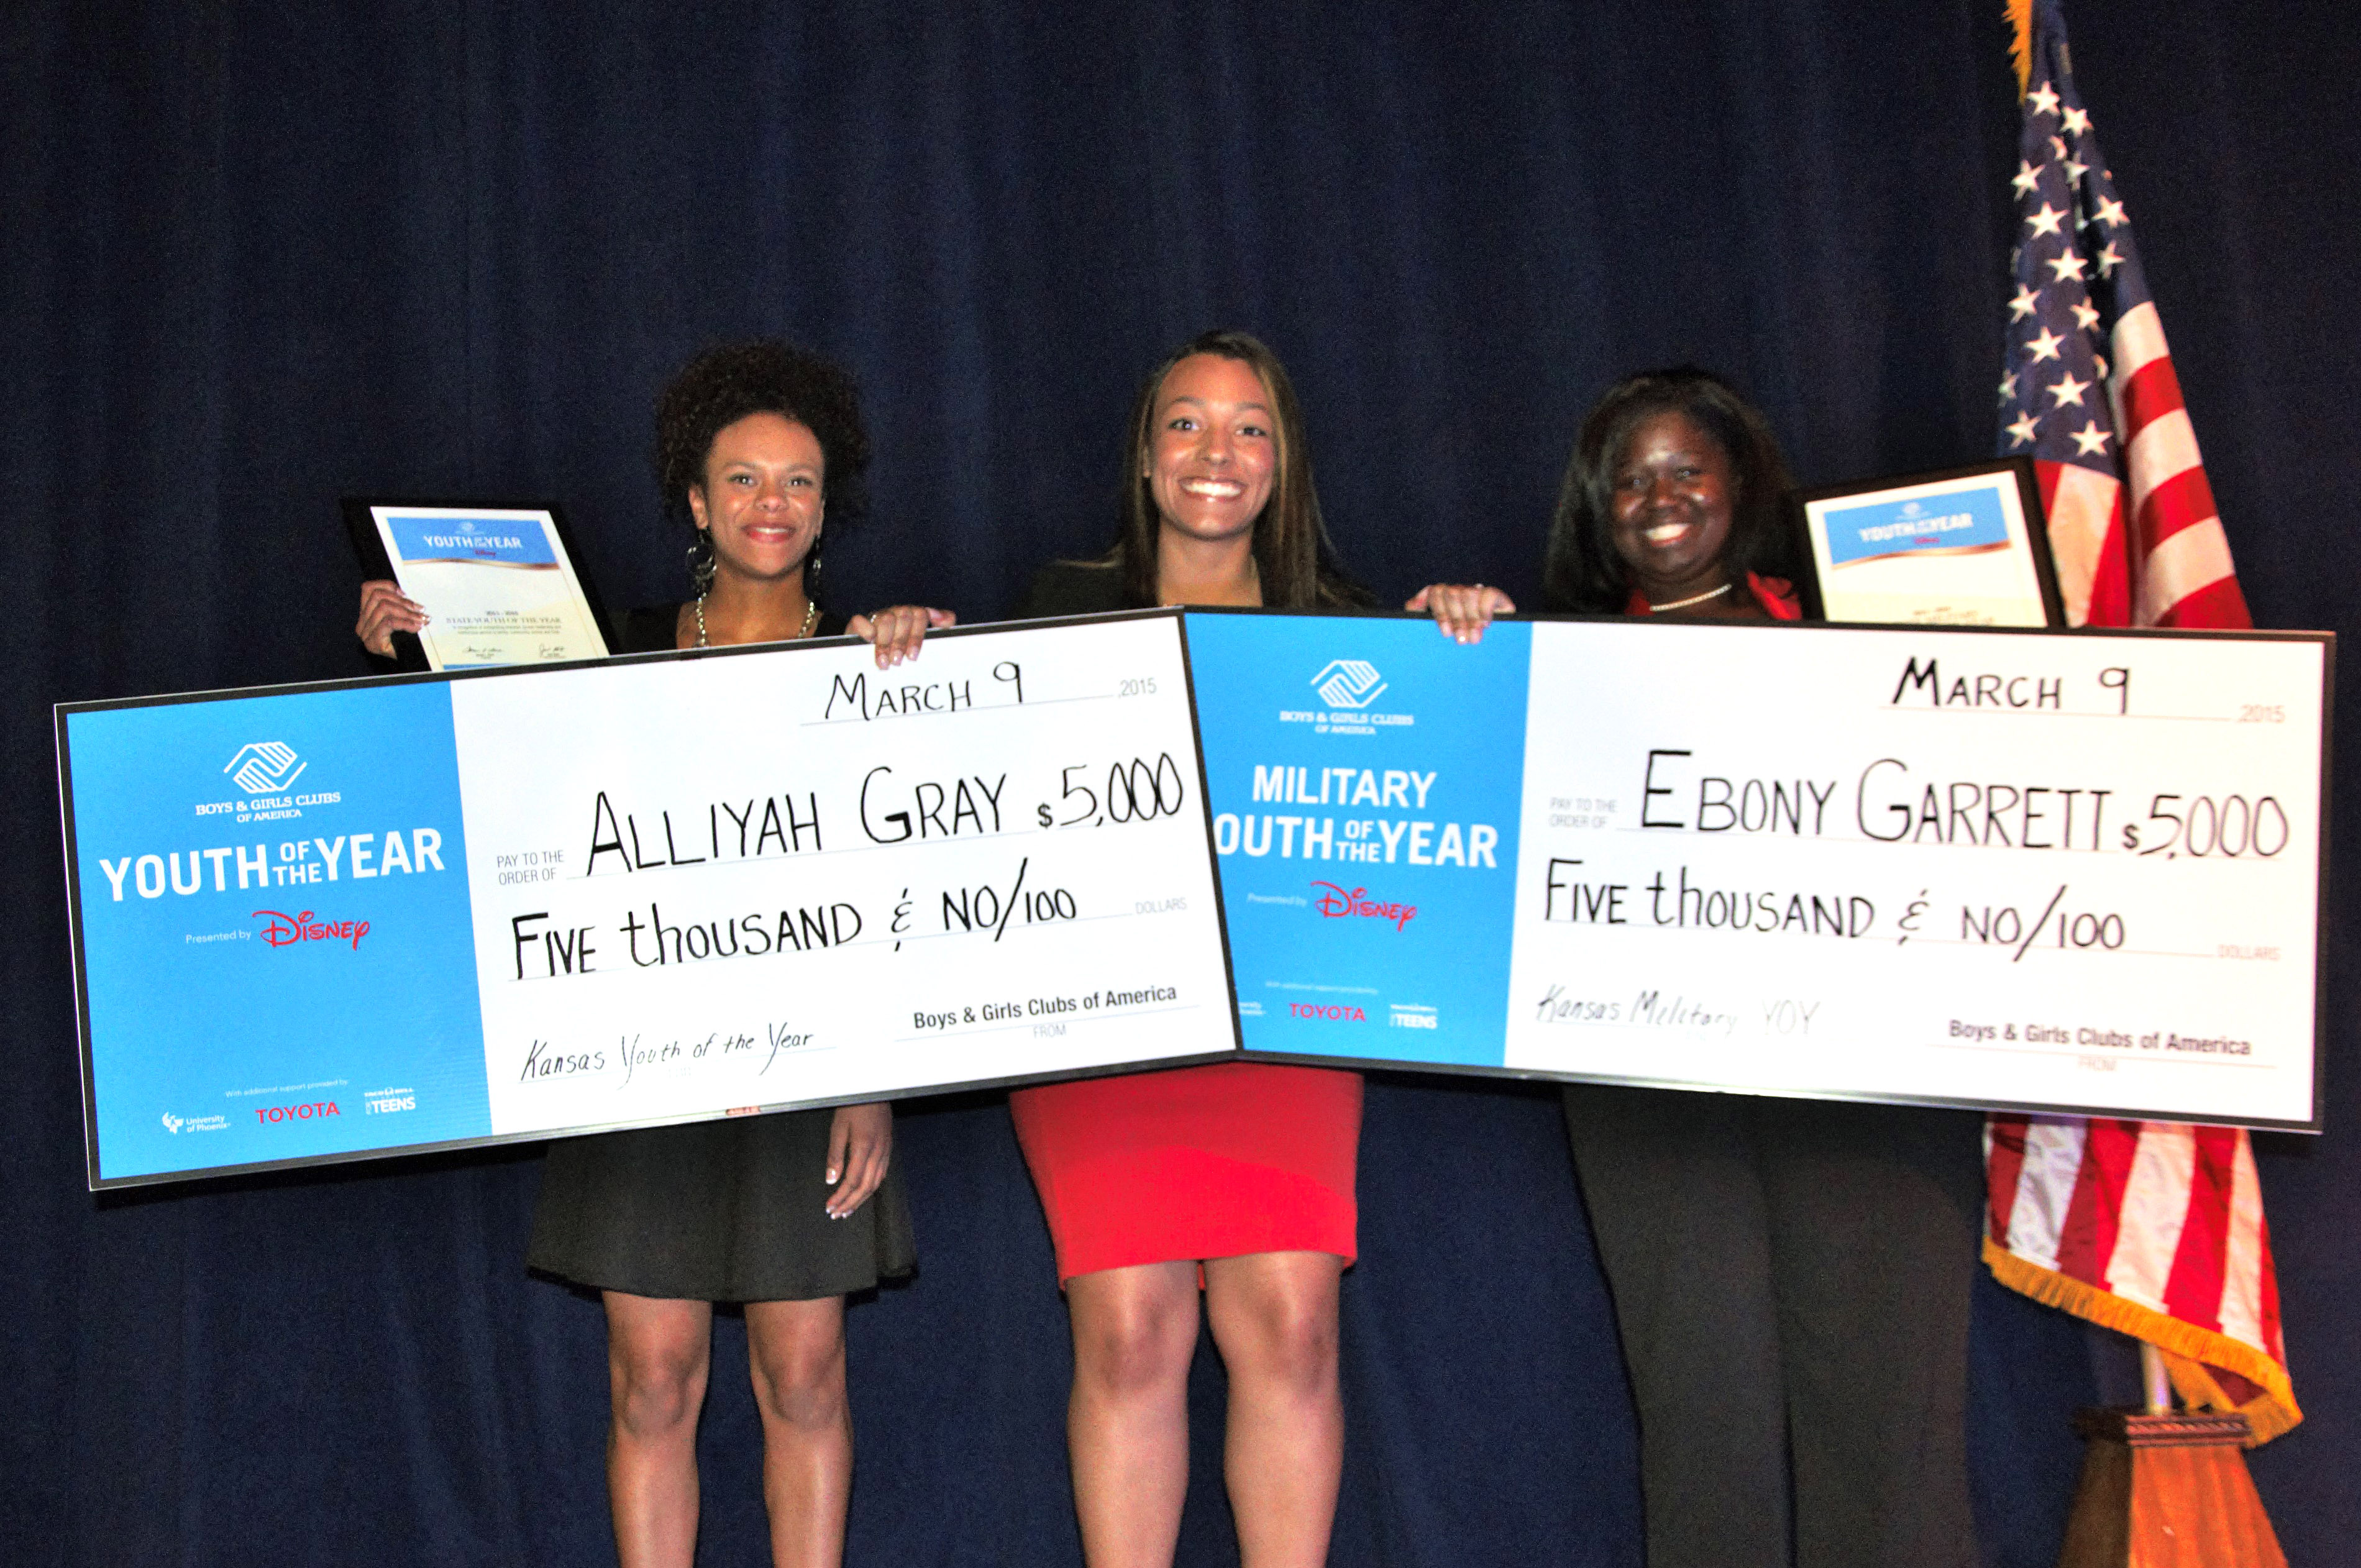 left to right, Alliyah Gray, Trei Dudley, 2012 National Youth of the Year from the Boys & Girls Club of Lawrence, Ebony Garrett